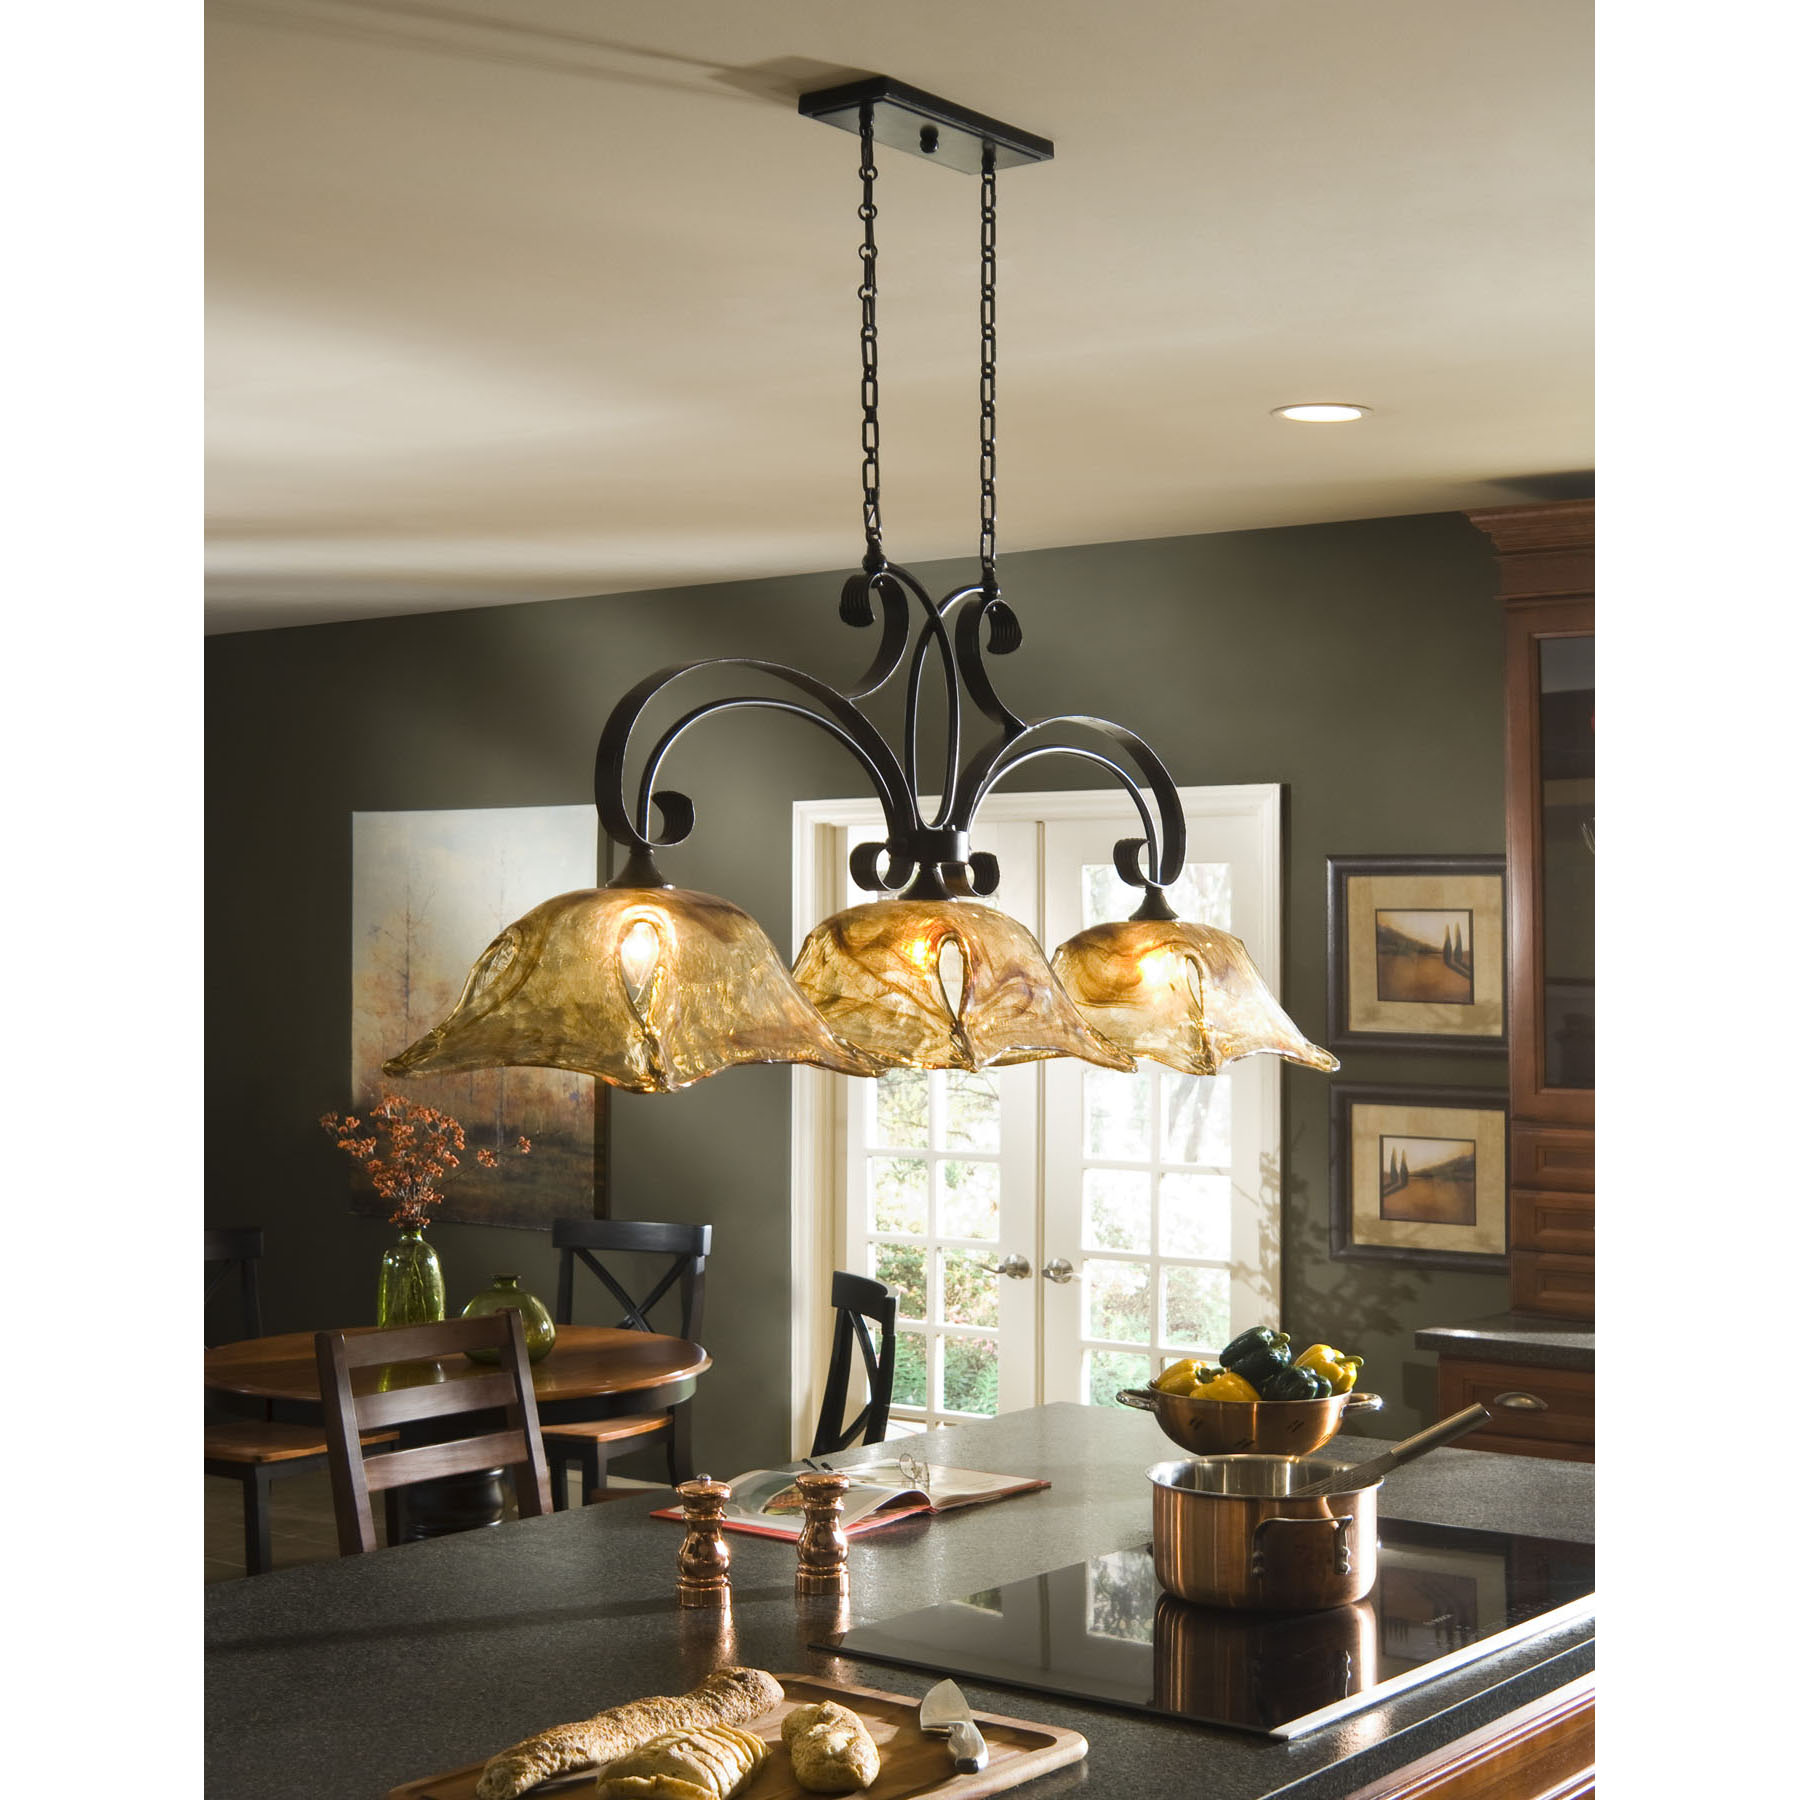 Uncategorized Kitchen Island Fixtures 28 lighting fixtures for kitchen island a tip sheet on how the right can make kitchen